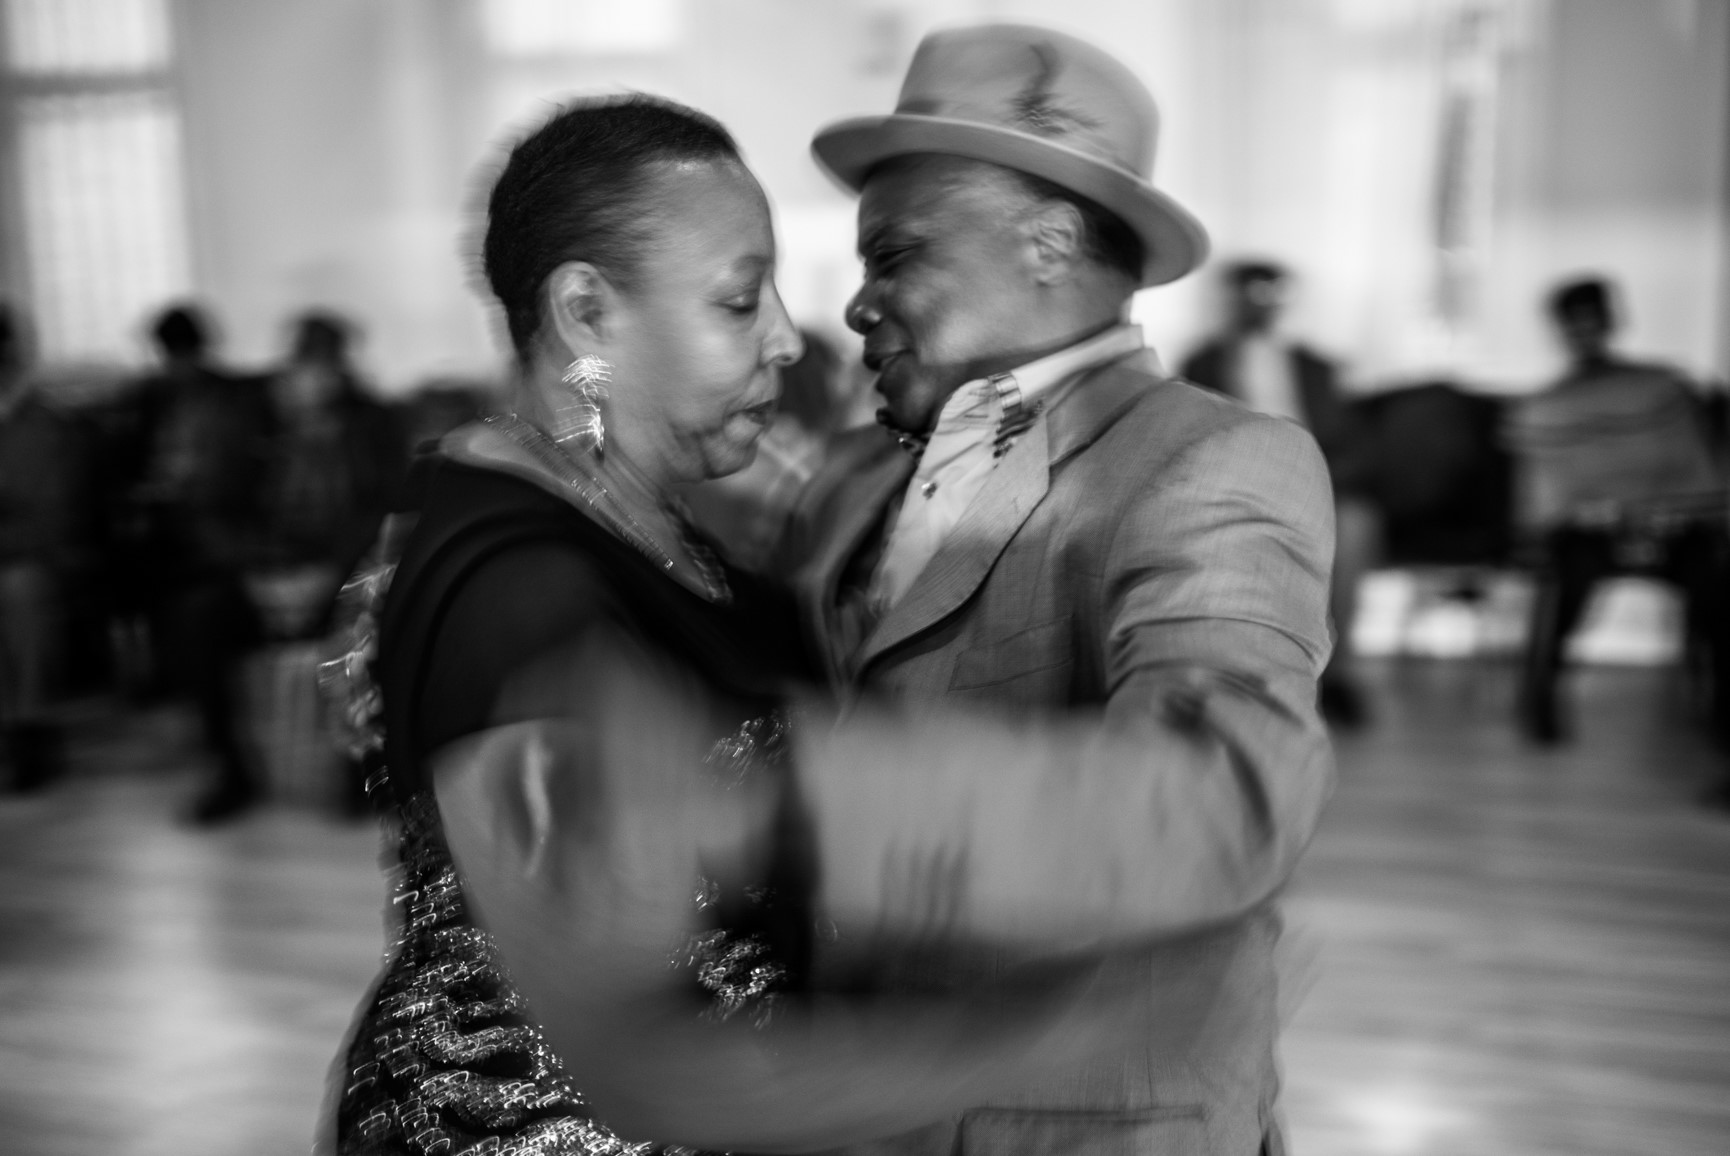 B&W photo of older couple dancing - from the Windrush Generation exhibition